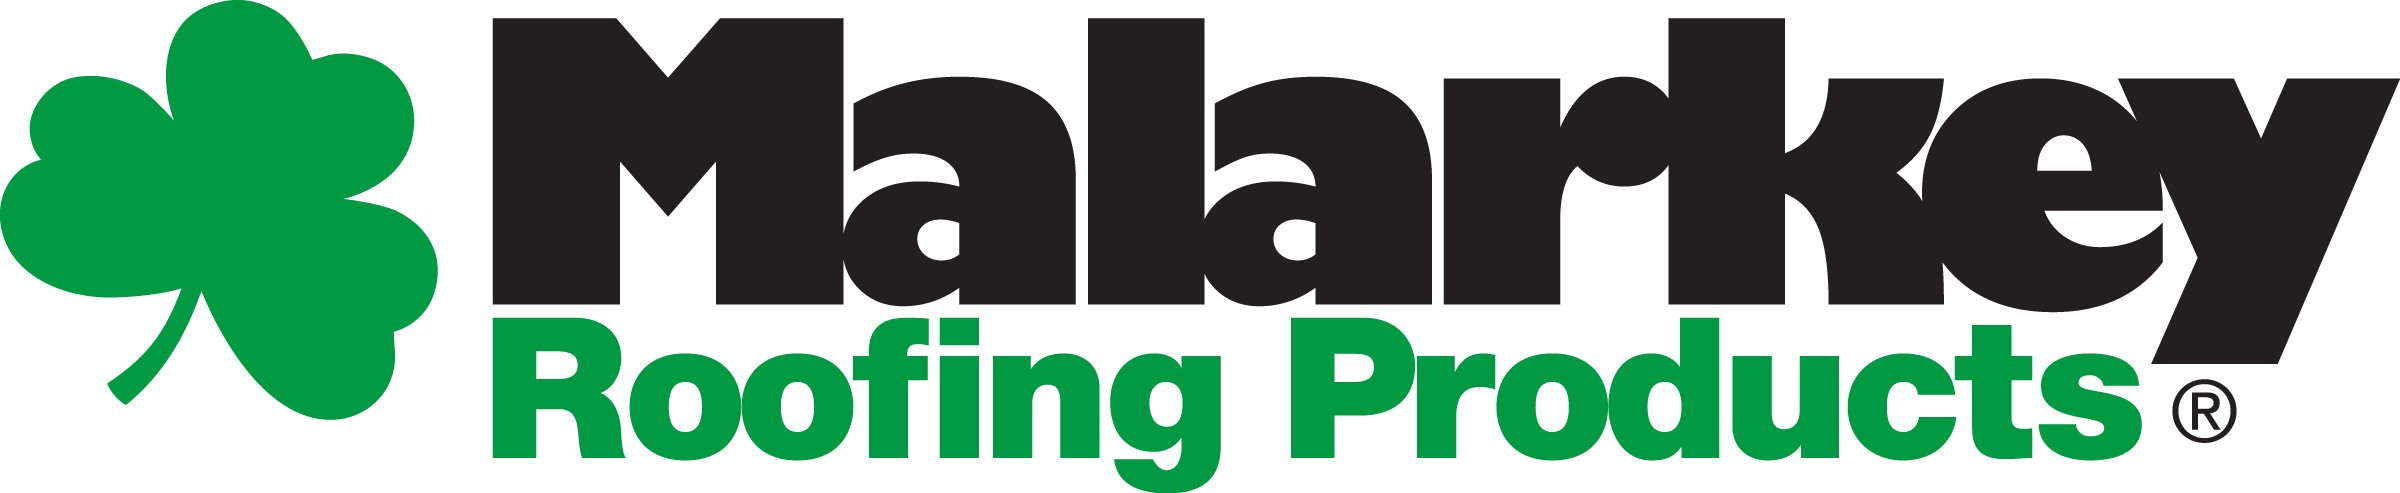 Malarkey Roofing Products David's Roofing